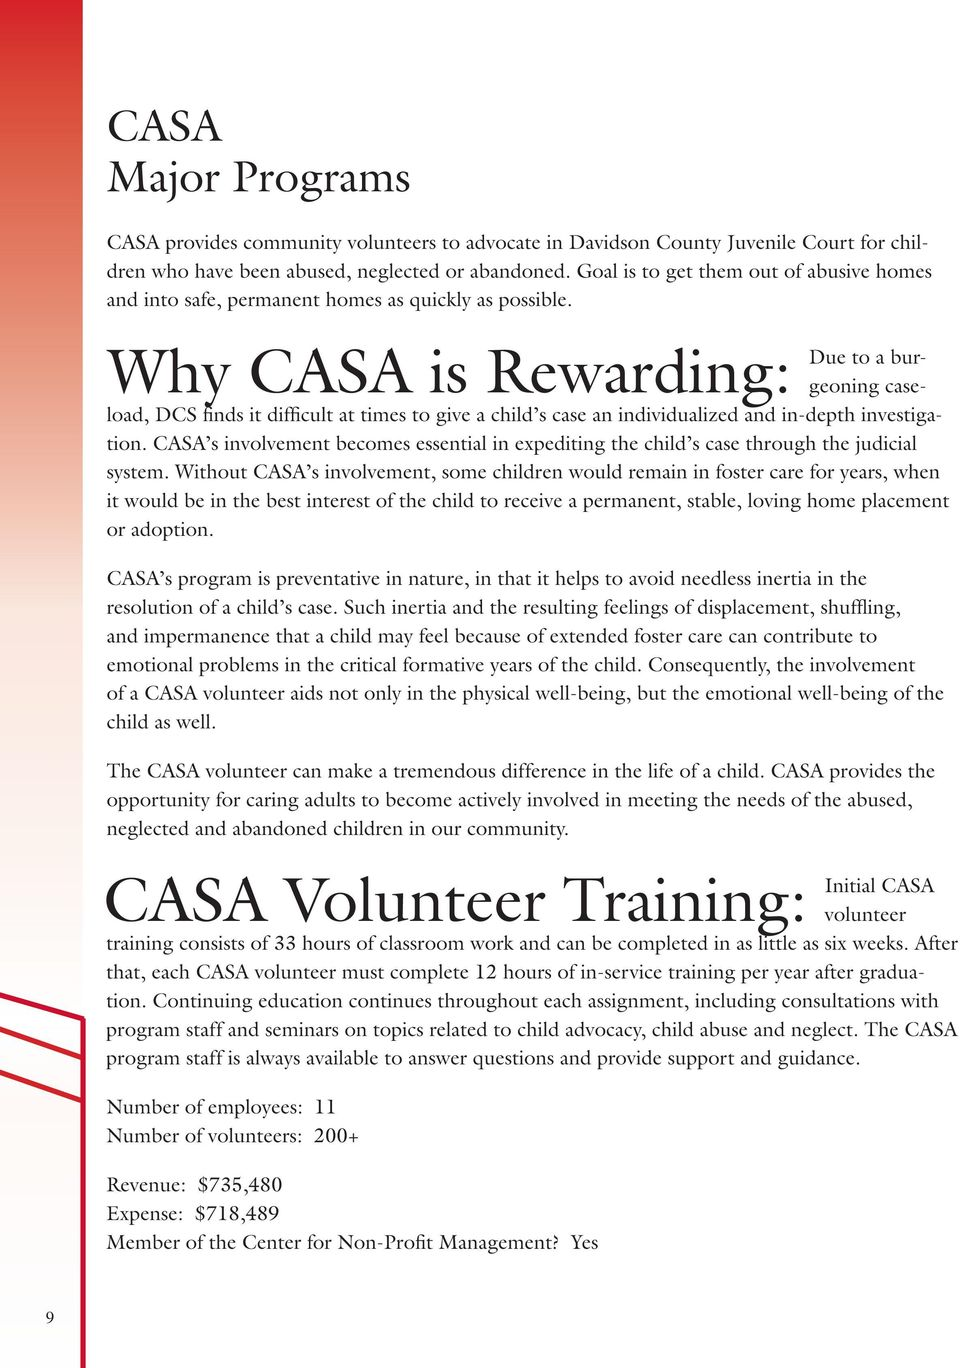 Why CASA is Rewarding: Due to a burgeoning caseload, DCS finds it difficult at times to give a child s case an individualized and in-depth investigation.